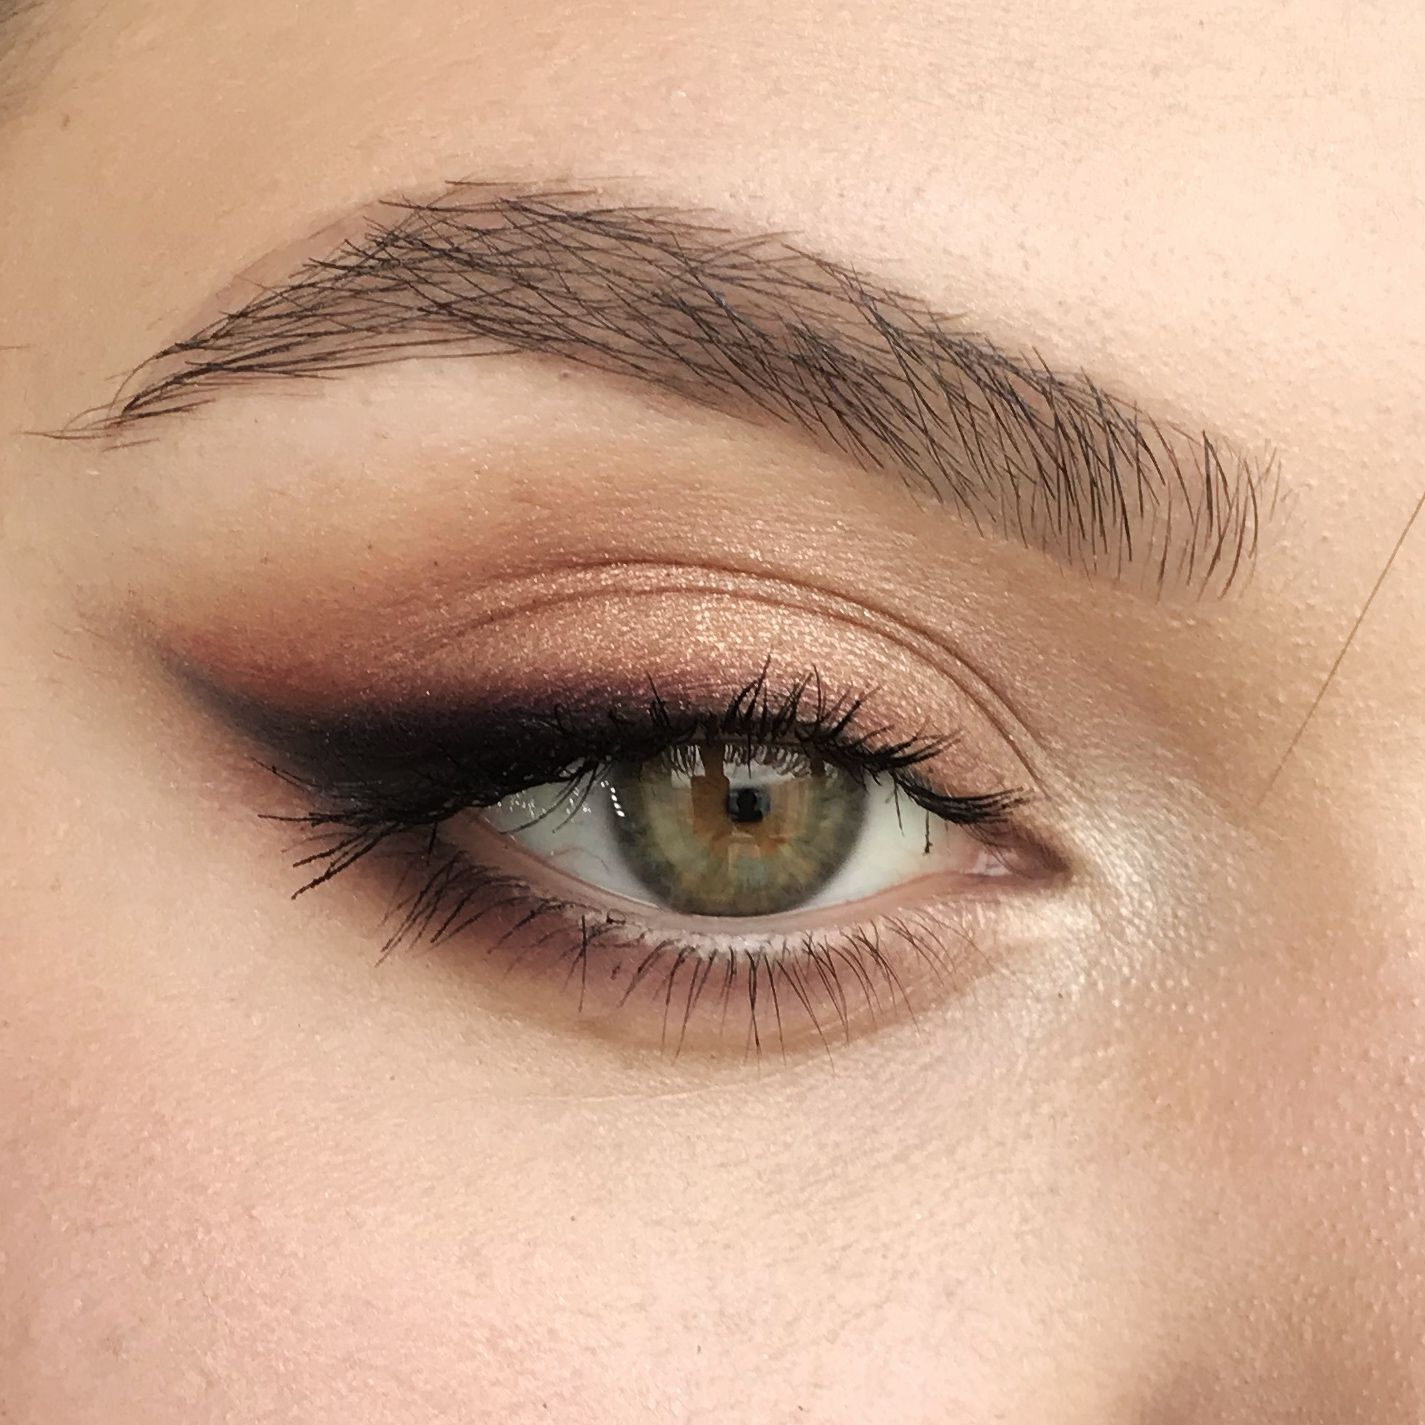 20 hottest smokey eye makeup ideas -  Nobody is perfect but makeup can help instead of taking a ste